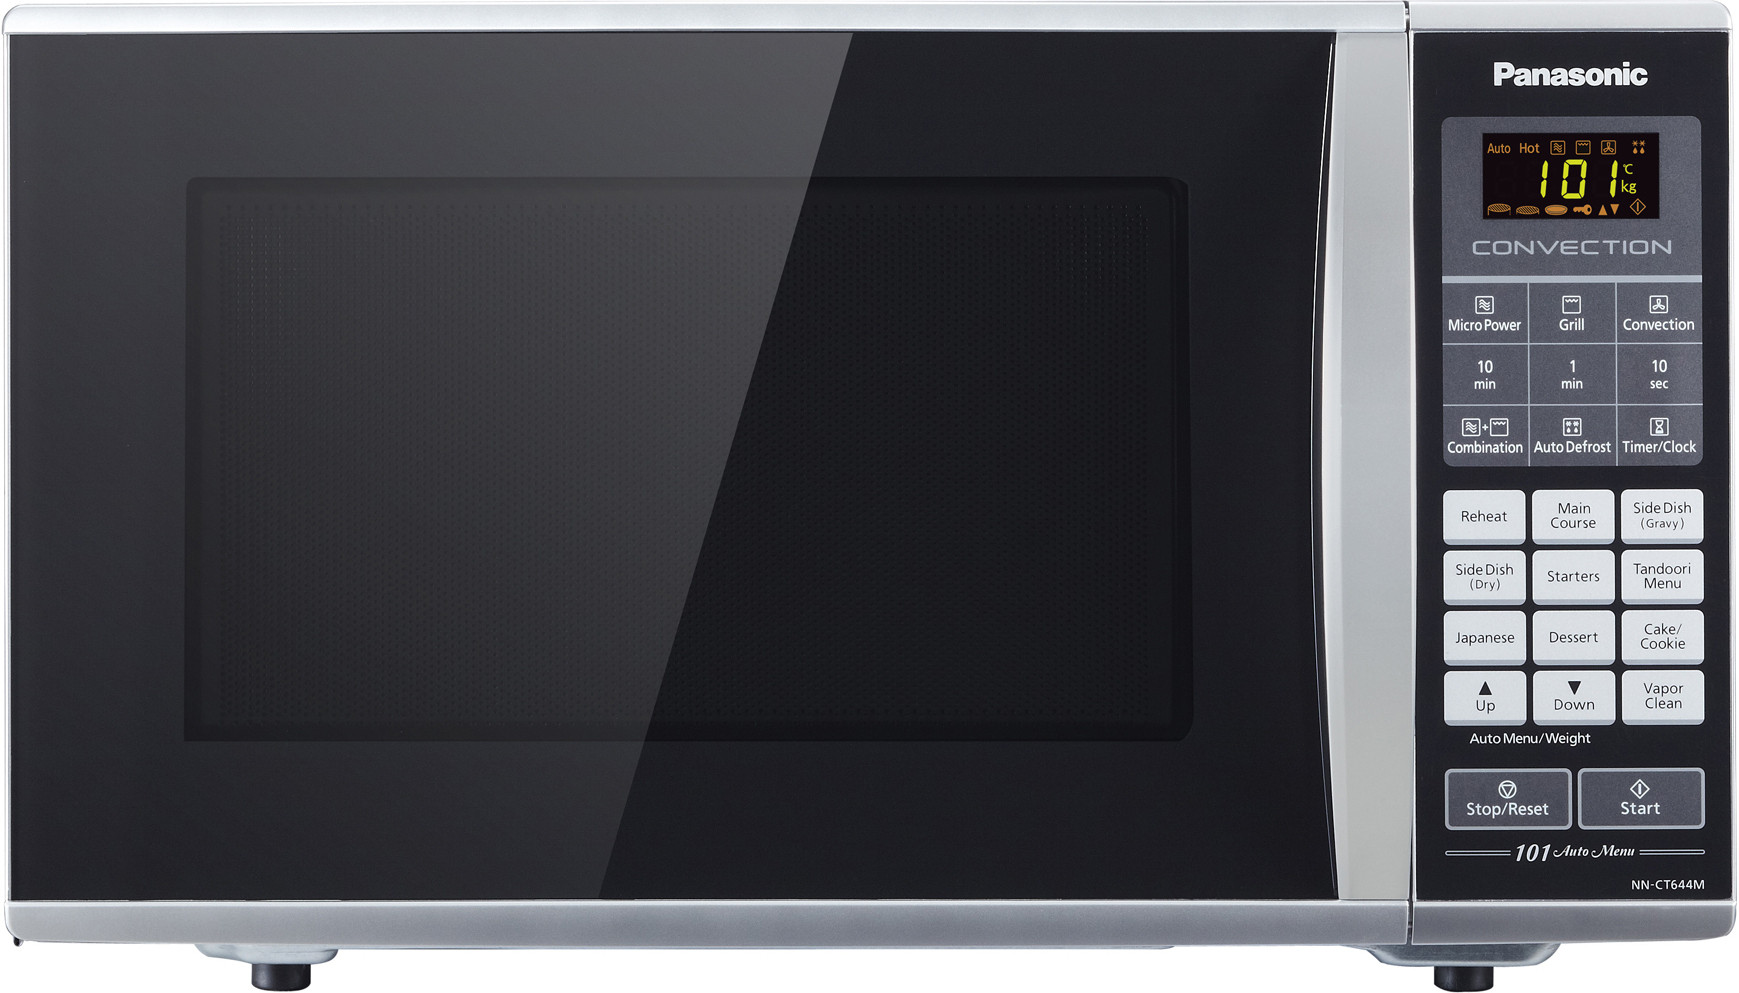 Get Best Panasonic Microwave Ovens As On June 26 2017